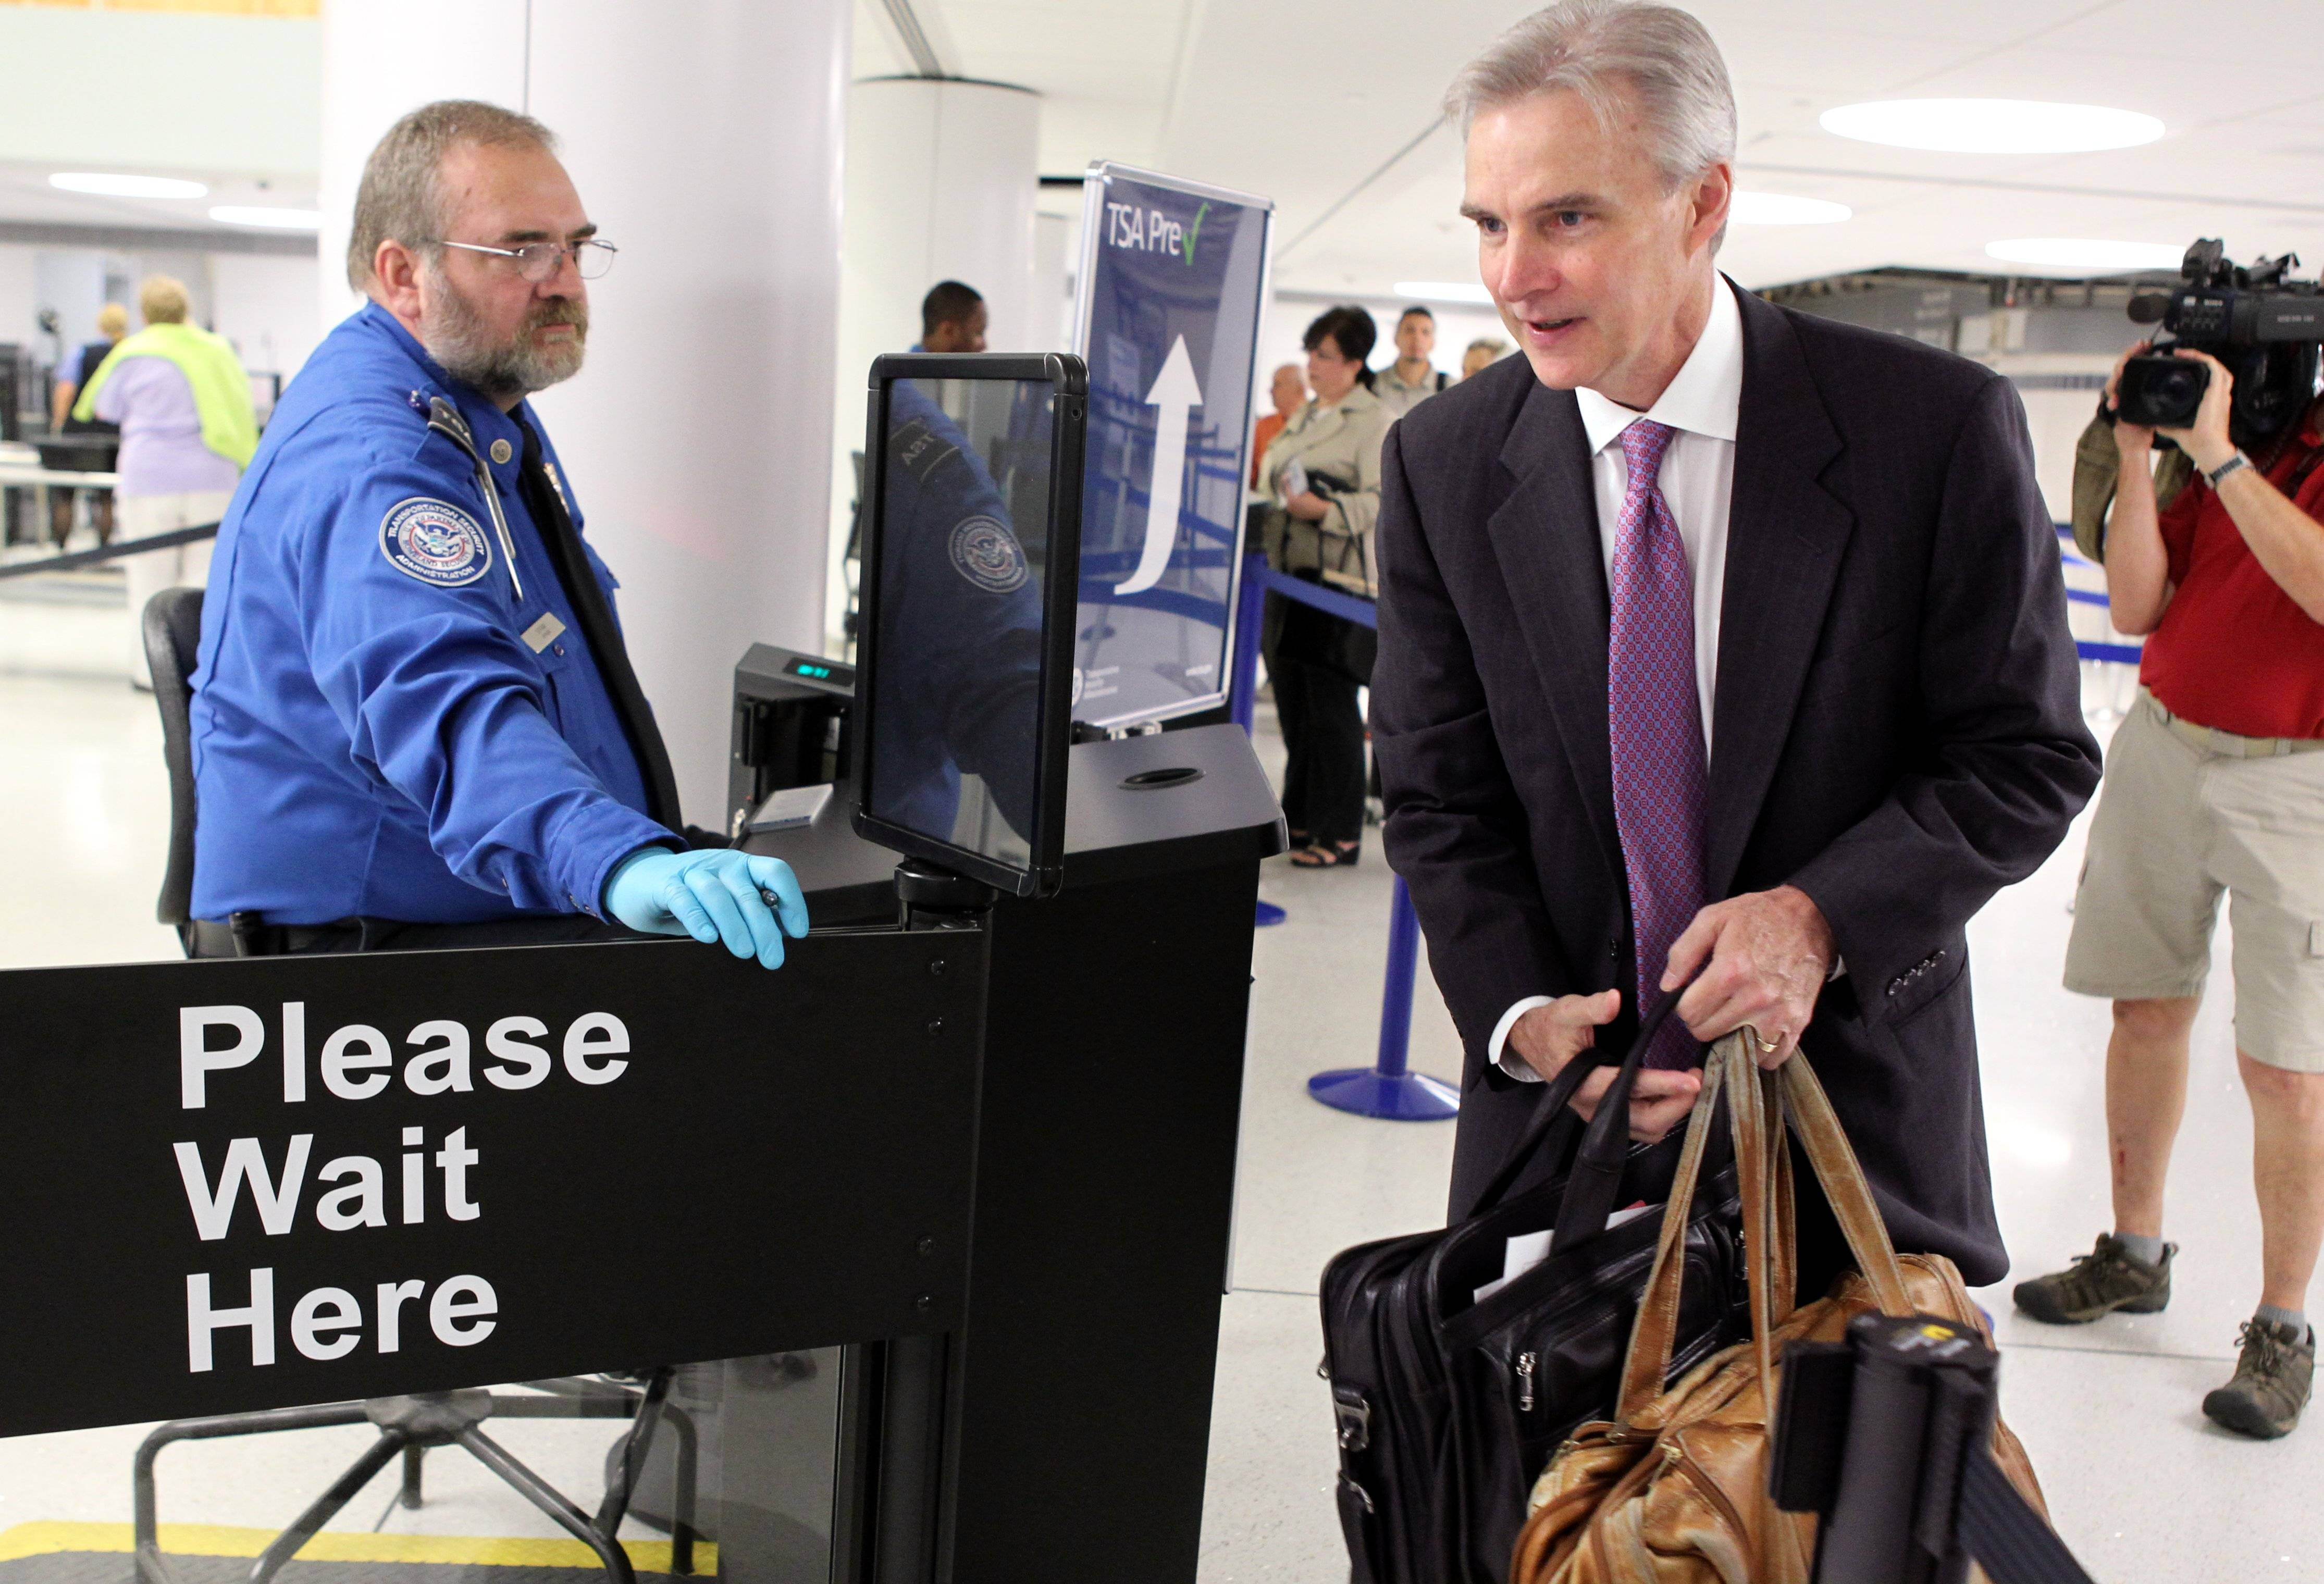 The TSA is expanding its PreCheck expedited screening program to passengers on international airlines. Air Canada on Tuesday, April 29, 2014 became the first international carrier to participate, with TSA officials saying other international airlines would soon sign on.